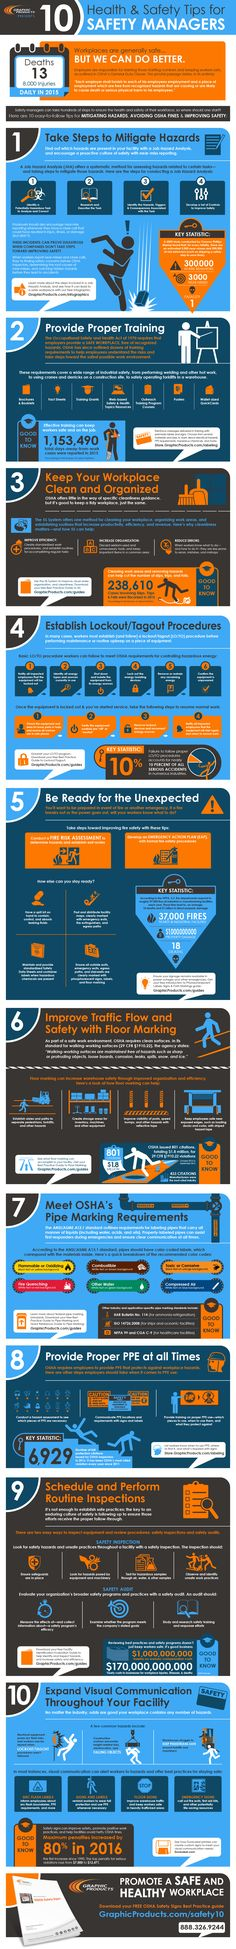 104 best safety training images on pinterest workplace safety this infographic offers 10 tips for improving safety it covers the importance of mitigating hazards fandeluxe Images